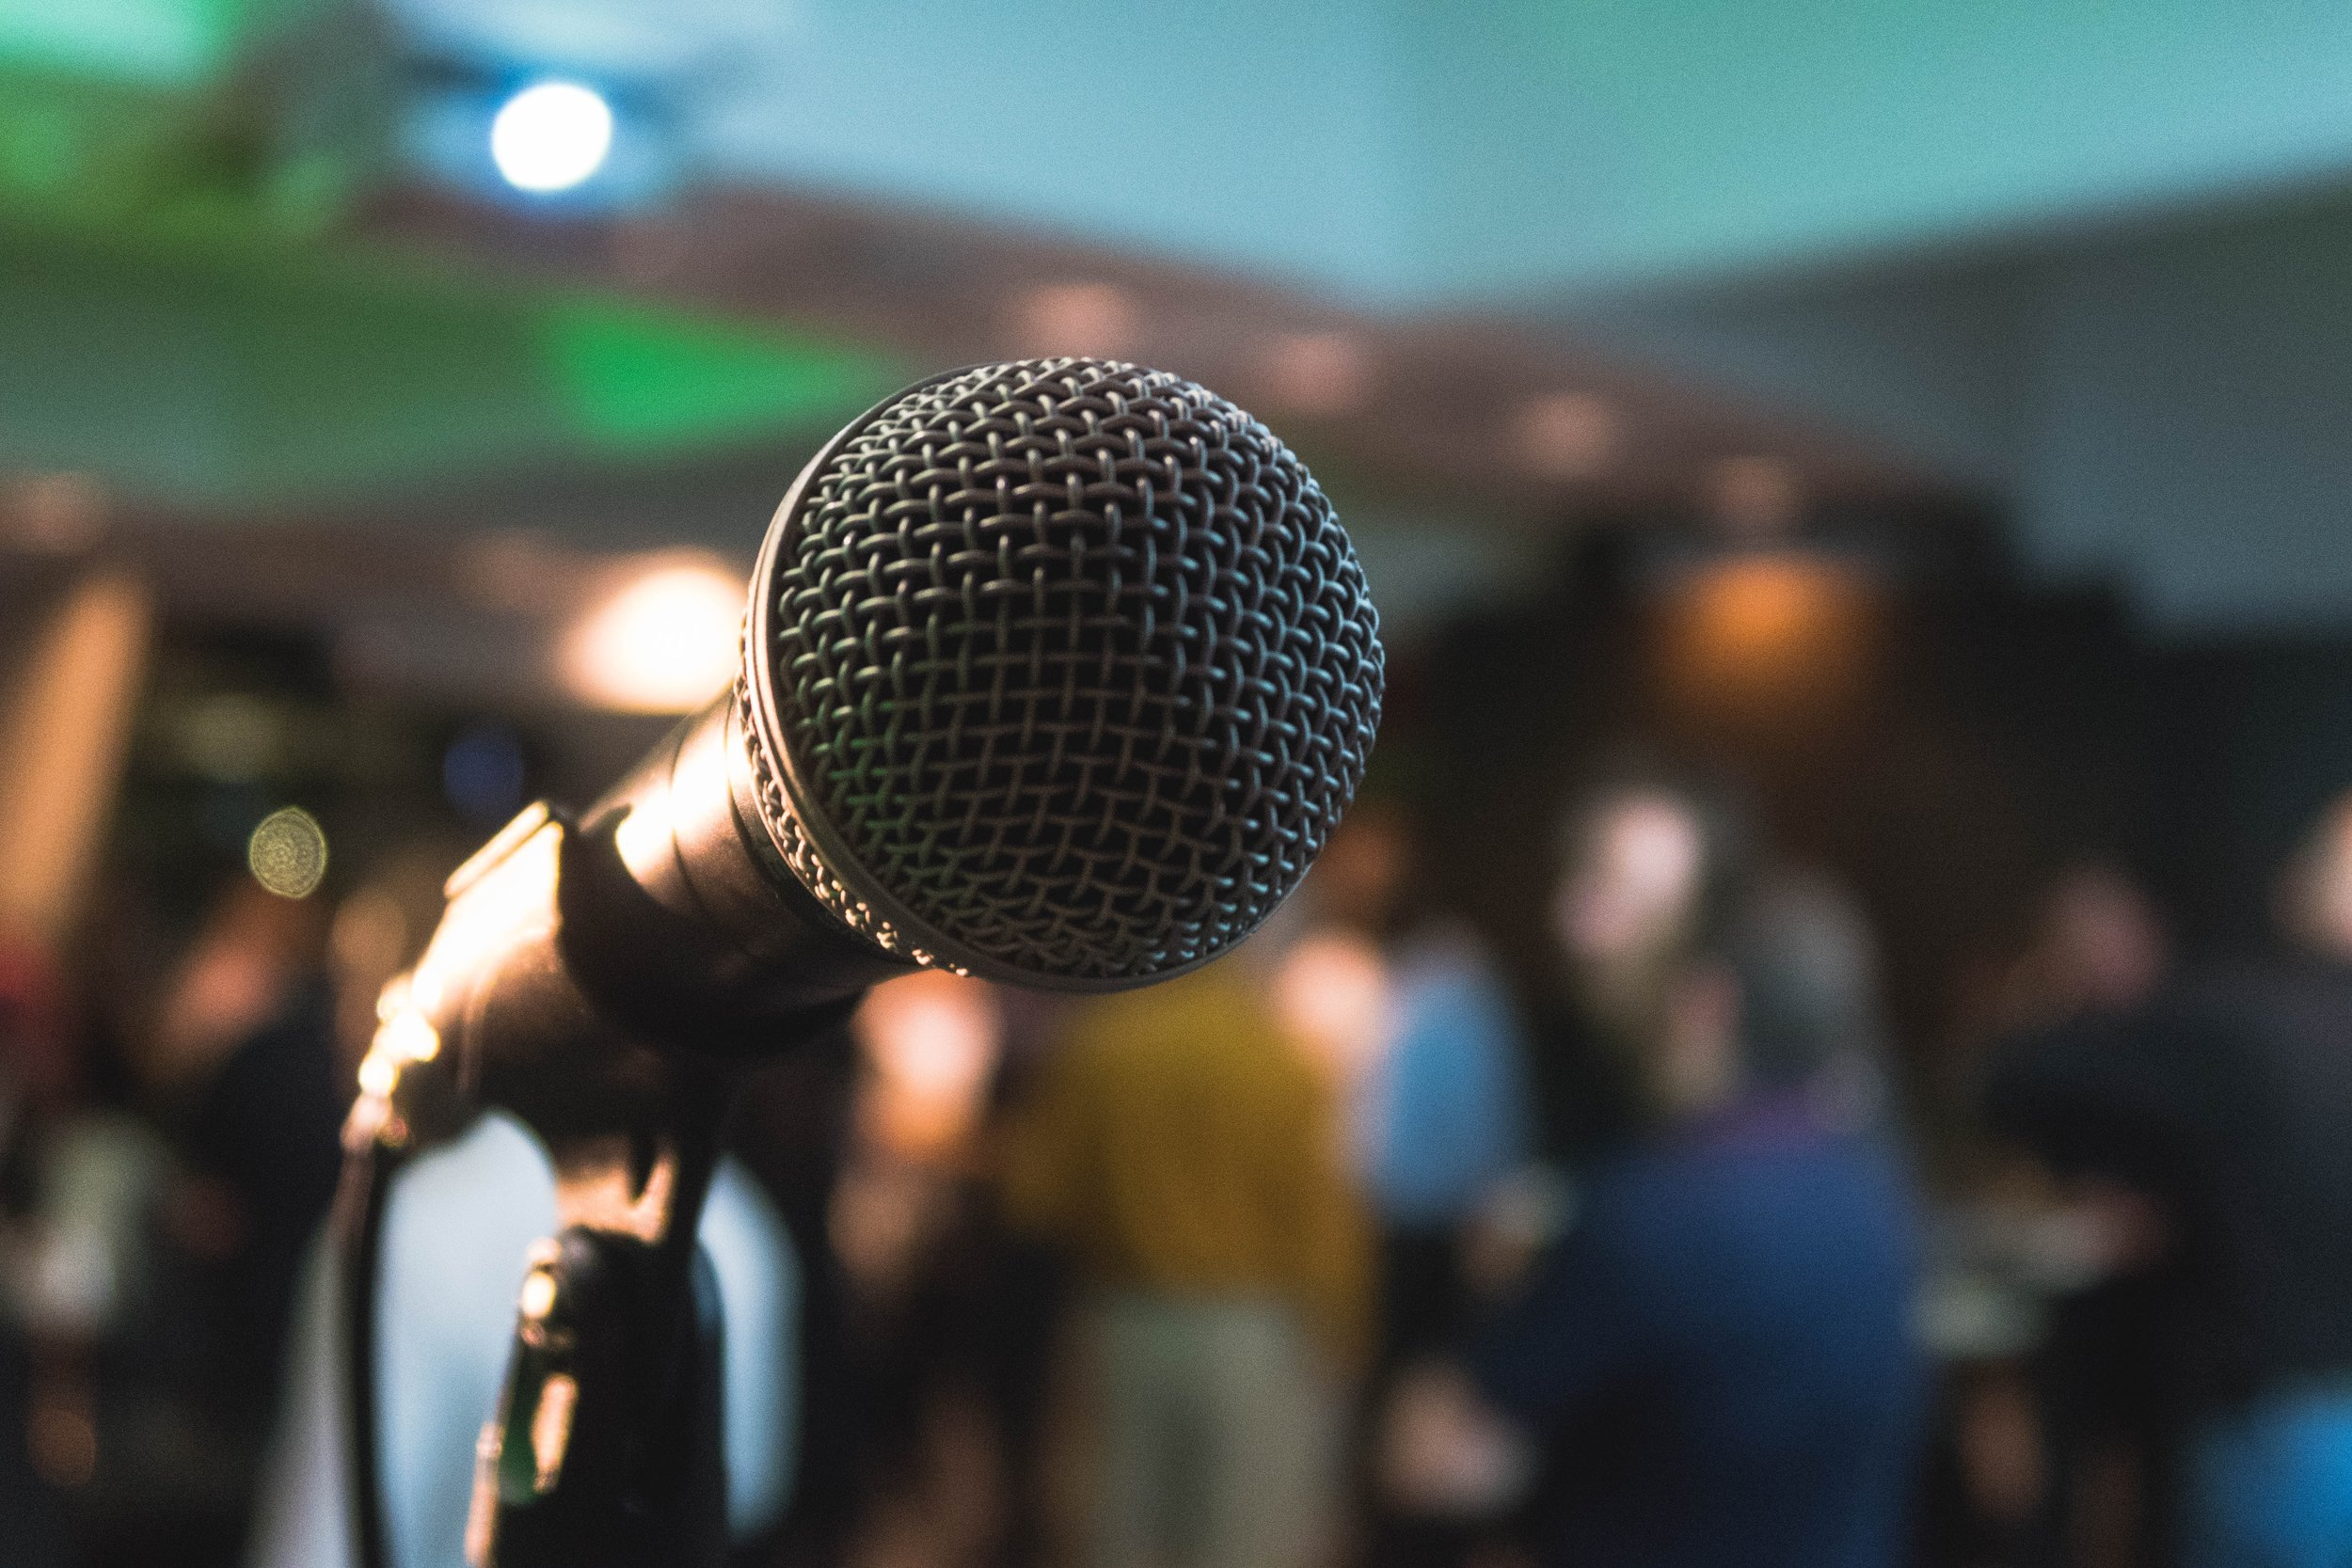 A black microphone on a stand with the background blurred out though it looks like some sort of event.